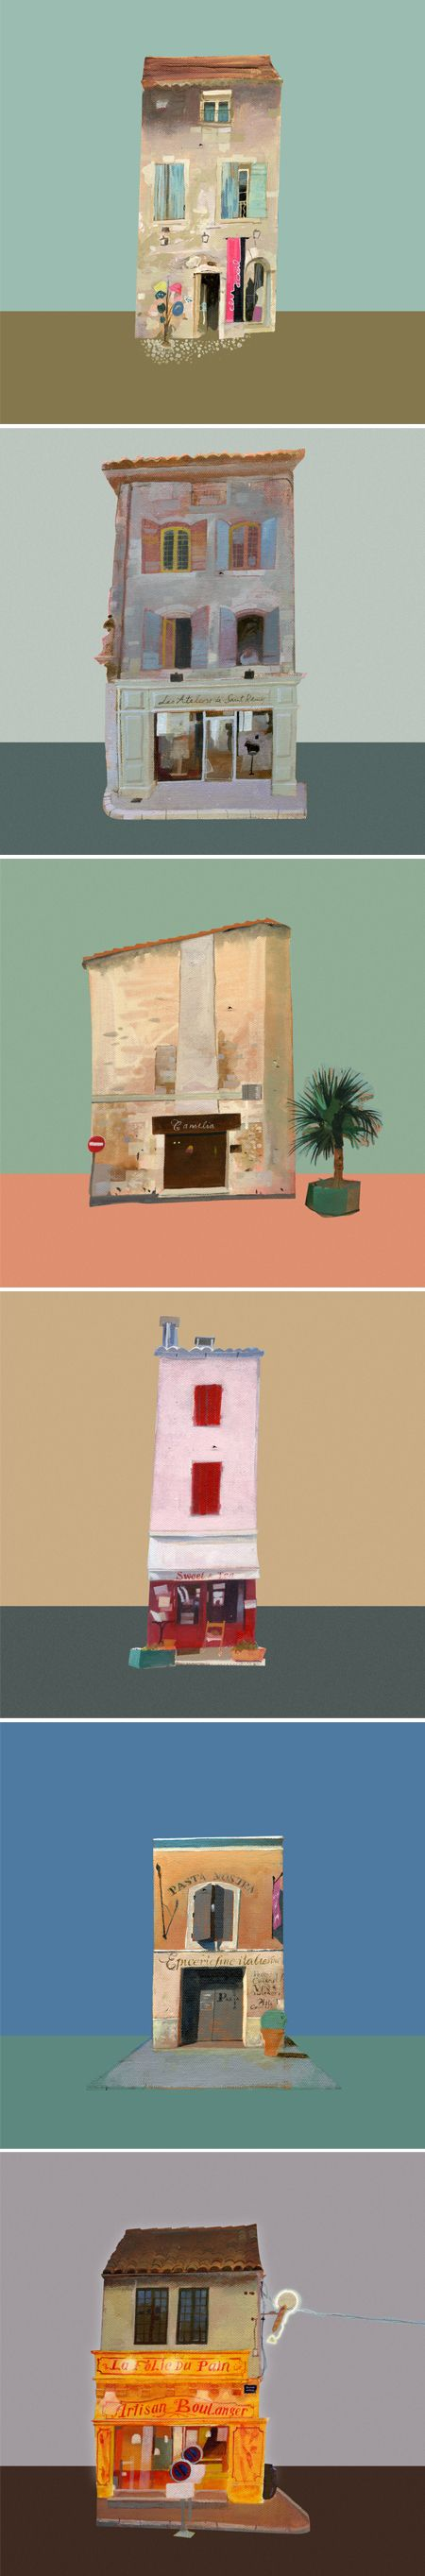 "johnnybull  ""Lovely little french storefronts, pulled out of their environments, dropped against color-blocked backgrounds, and painted oh so sweetly by Johnny Bull."""